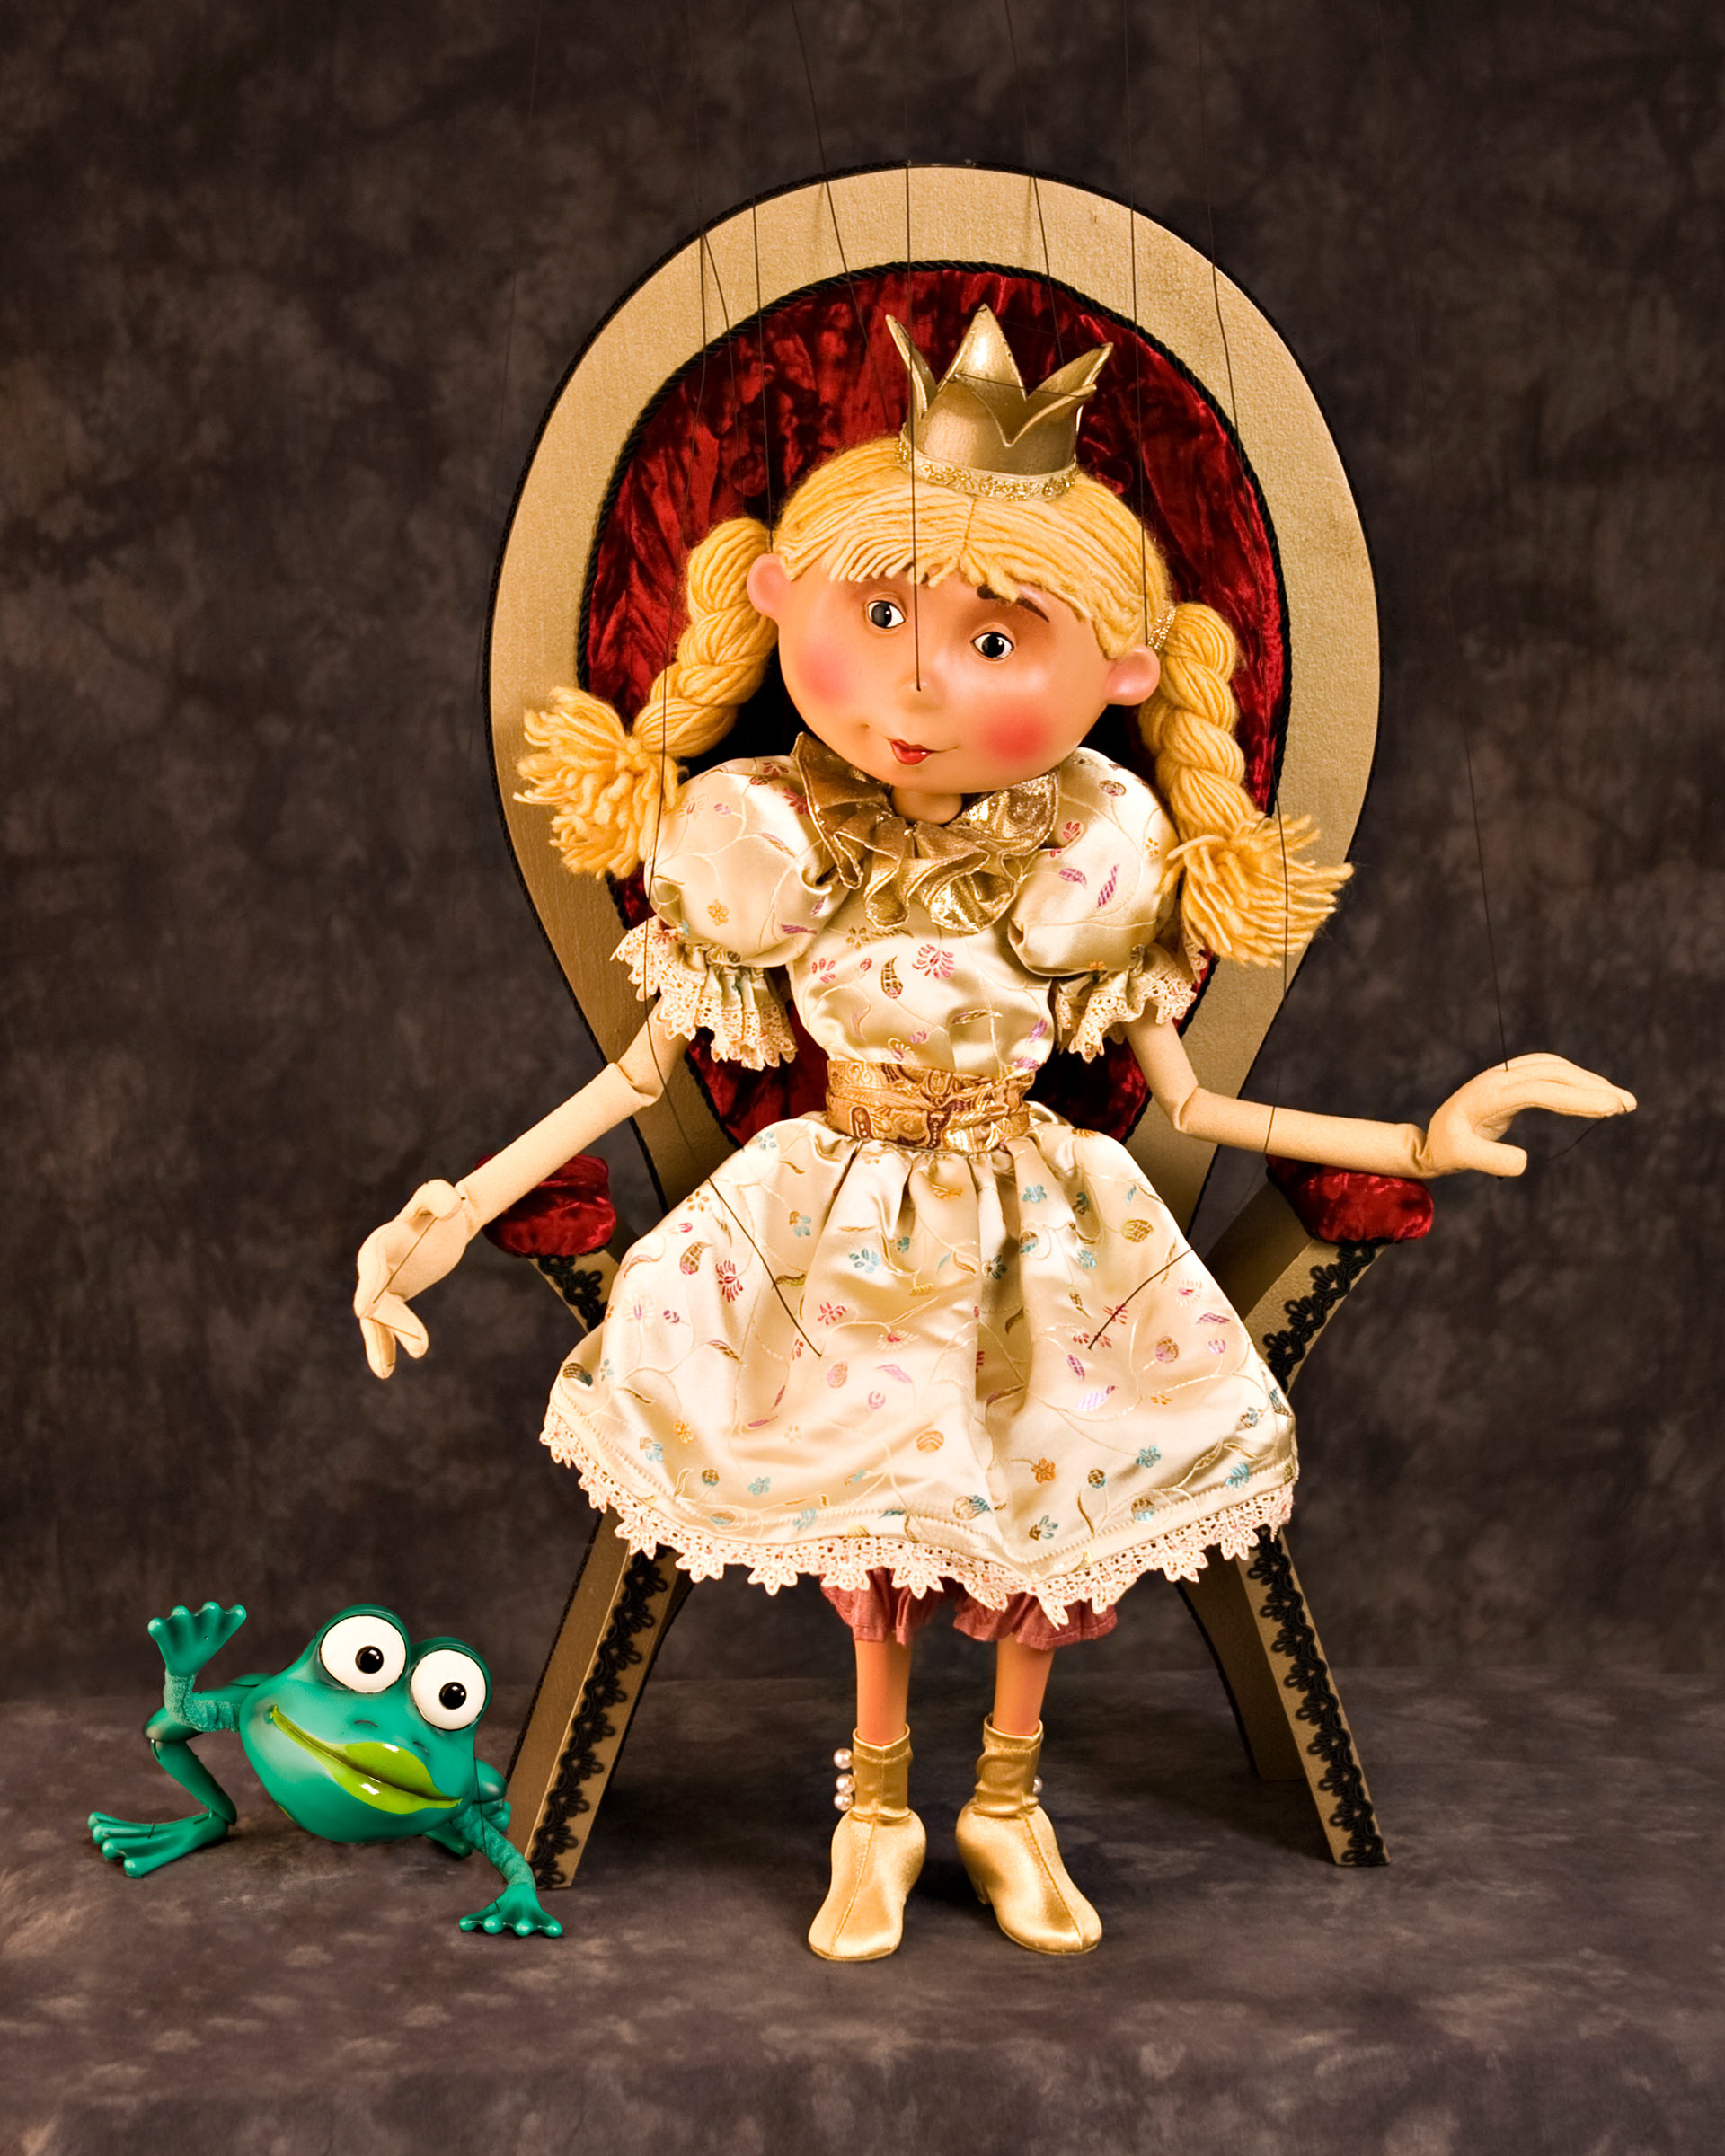 The Fratello Marionettes present The Frog Prince